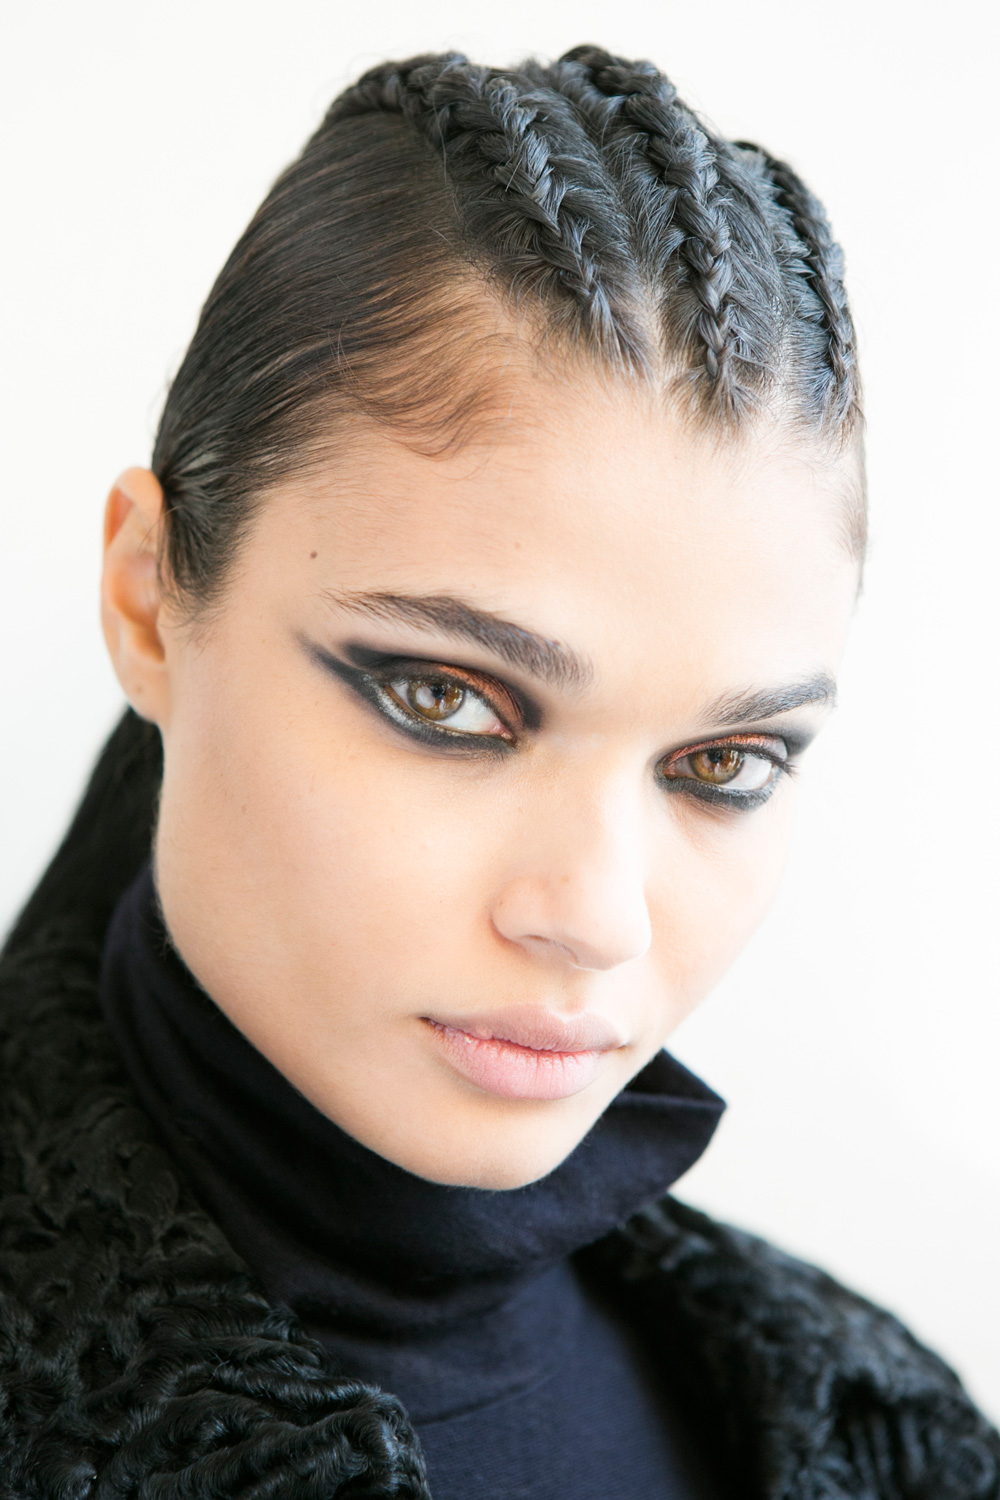 BALMAIN cornrows hairstyles 2017 fall